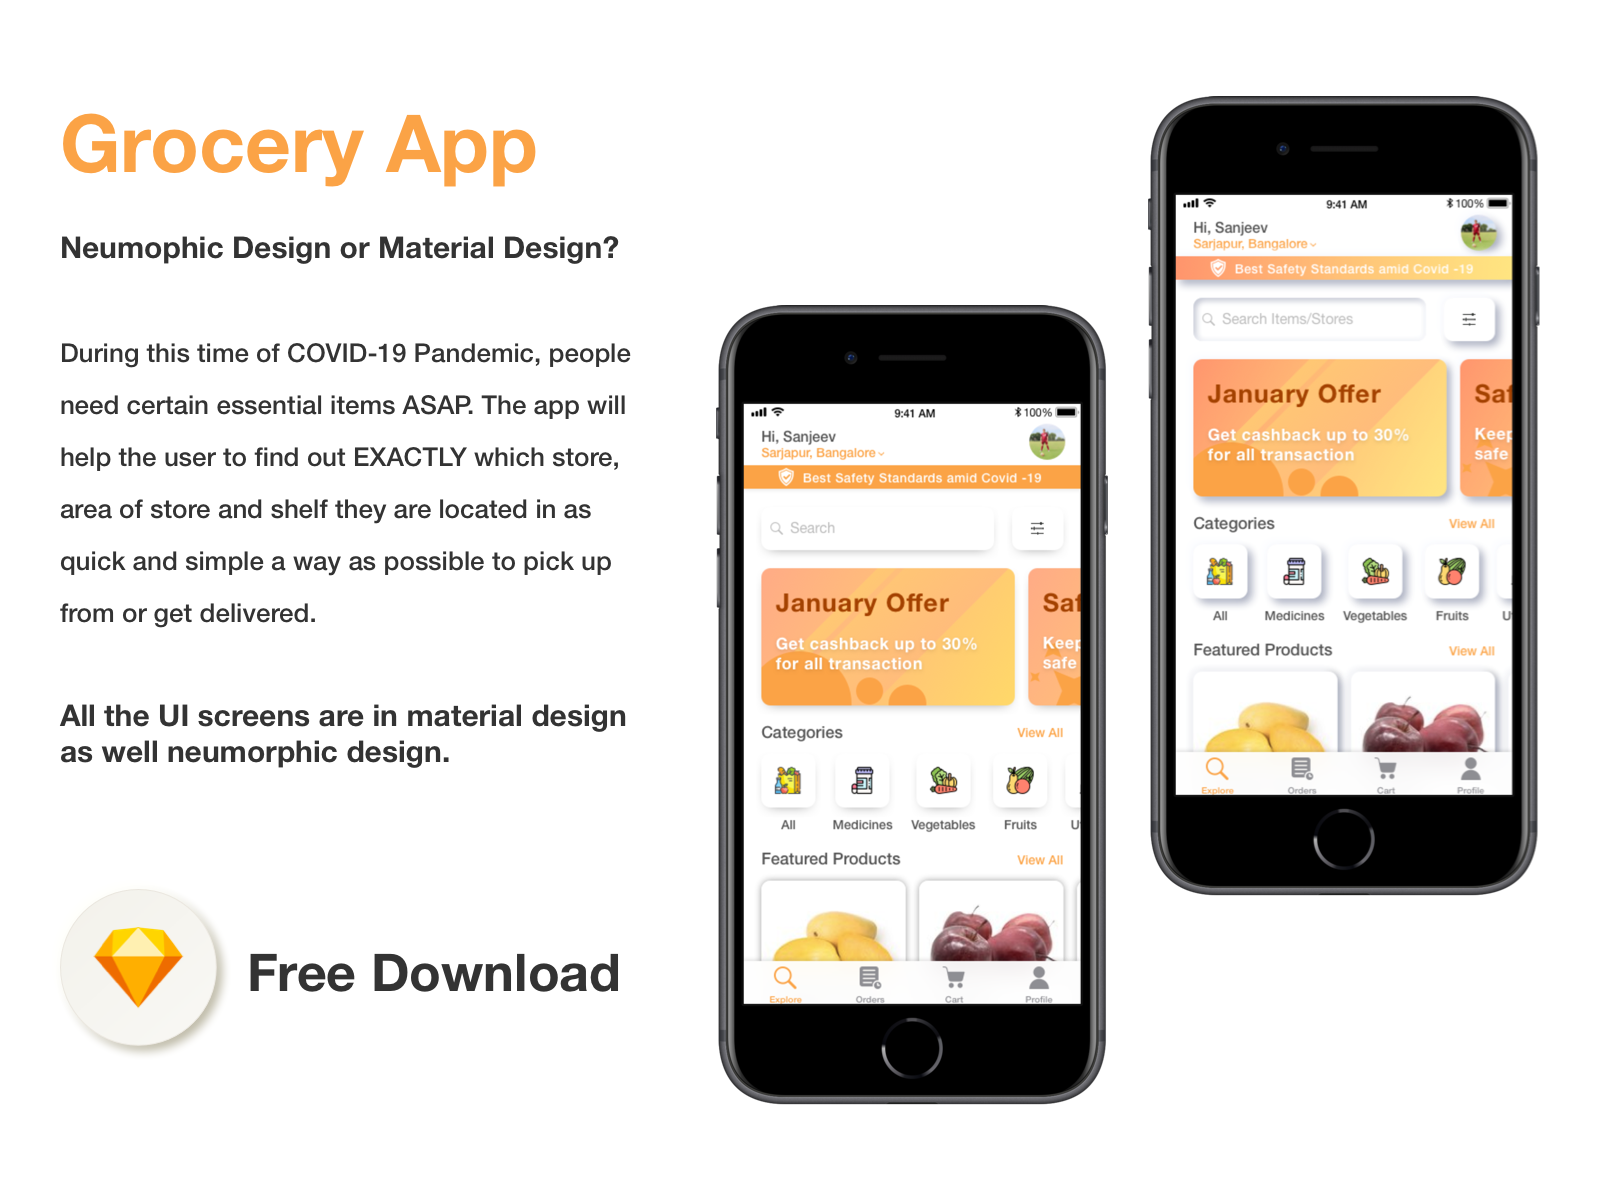 Grocery App cover image